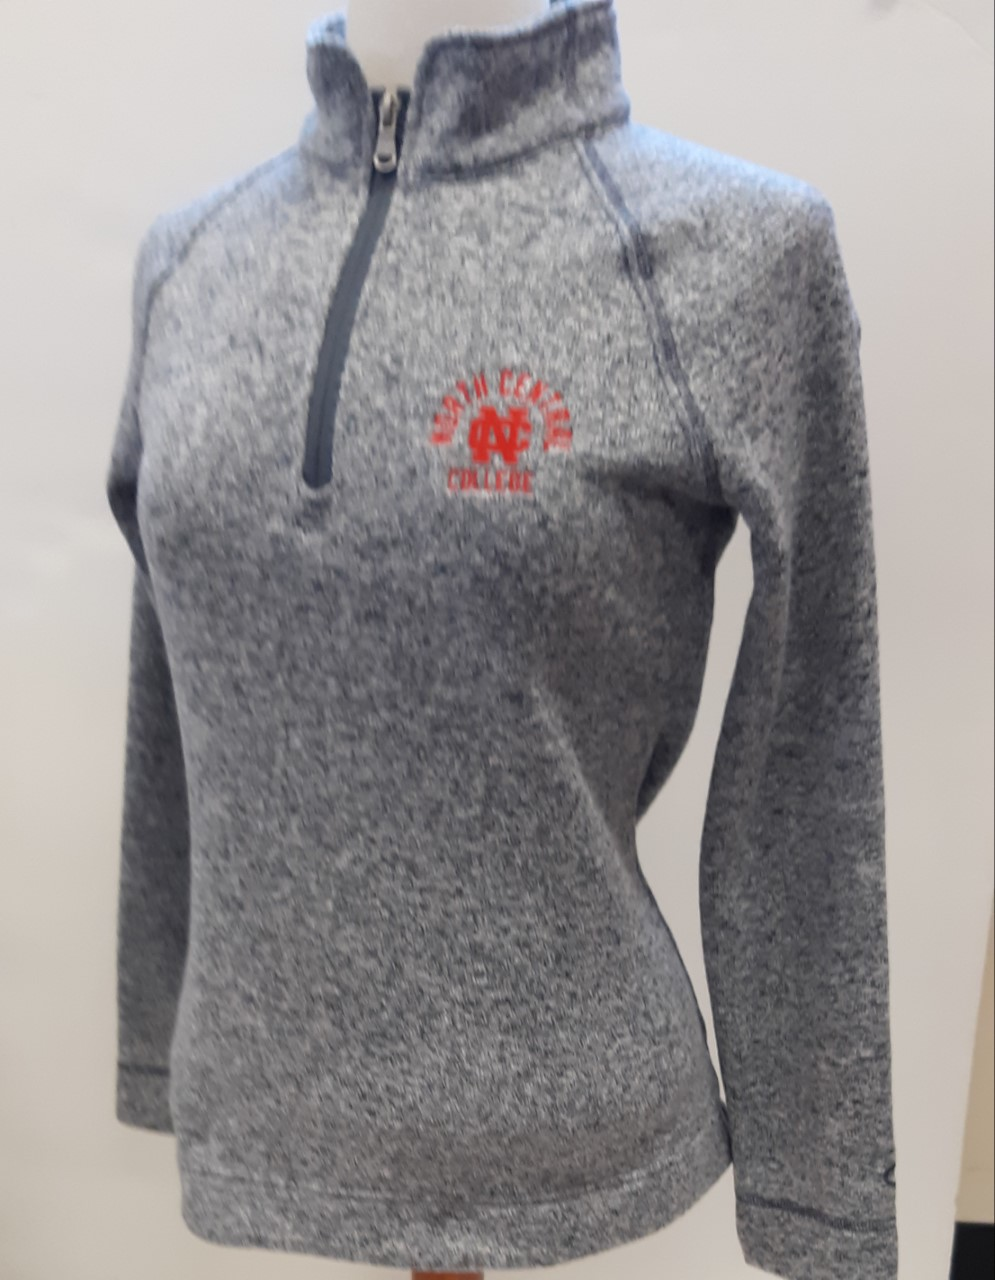 Image for the North Central College Women's Arctic 1/4 Zip by Champion product